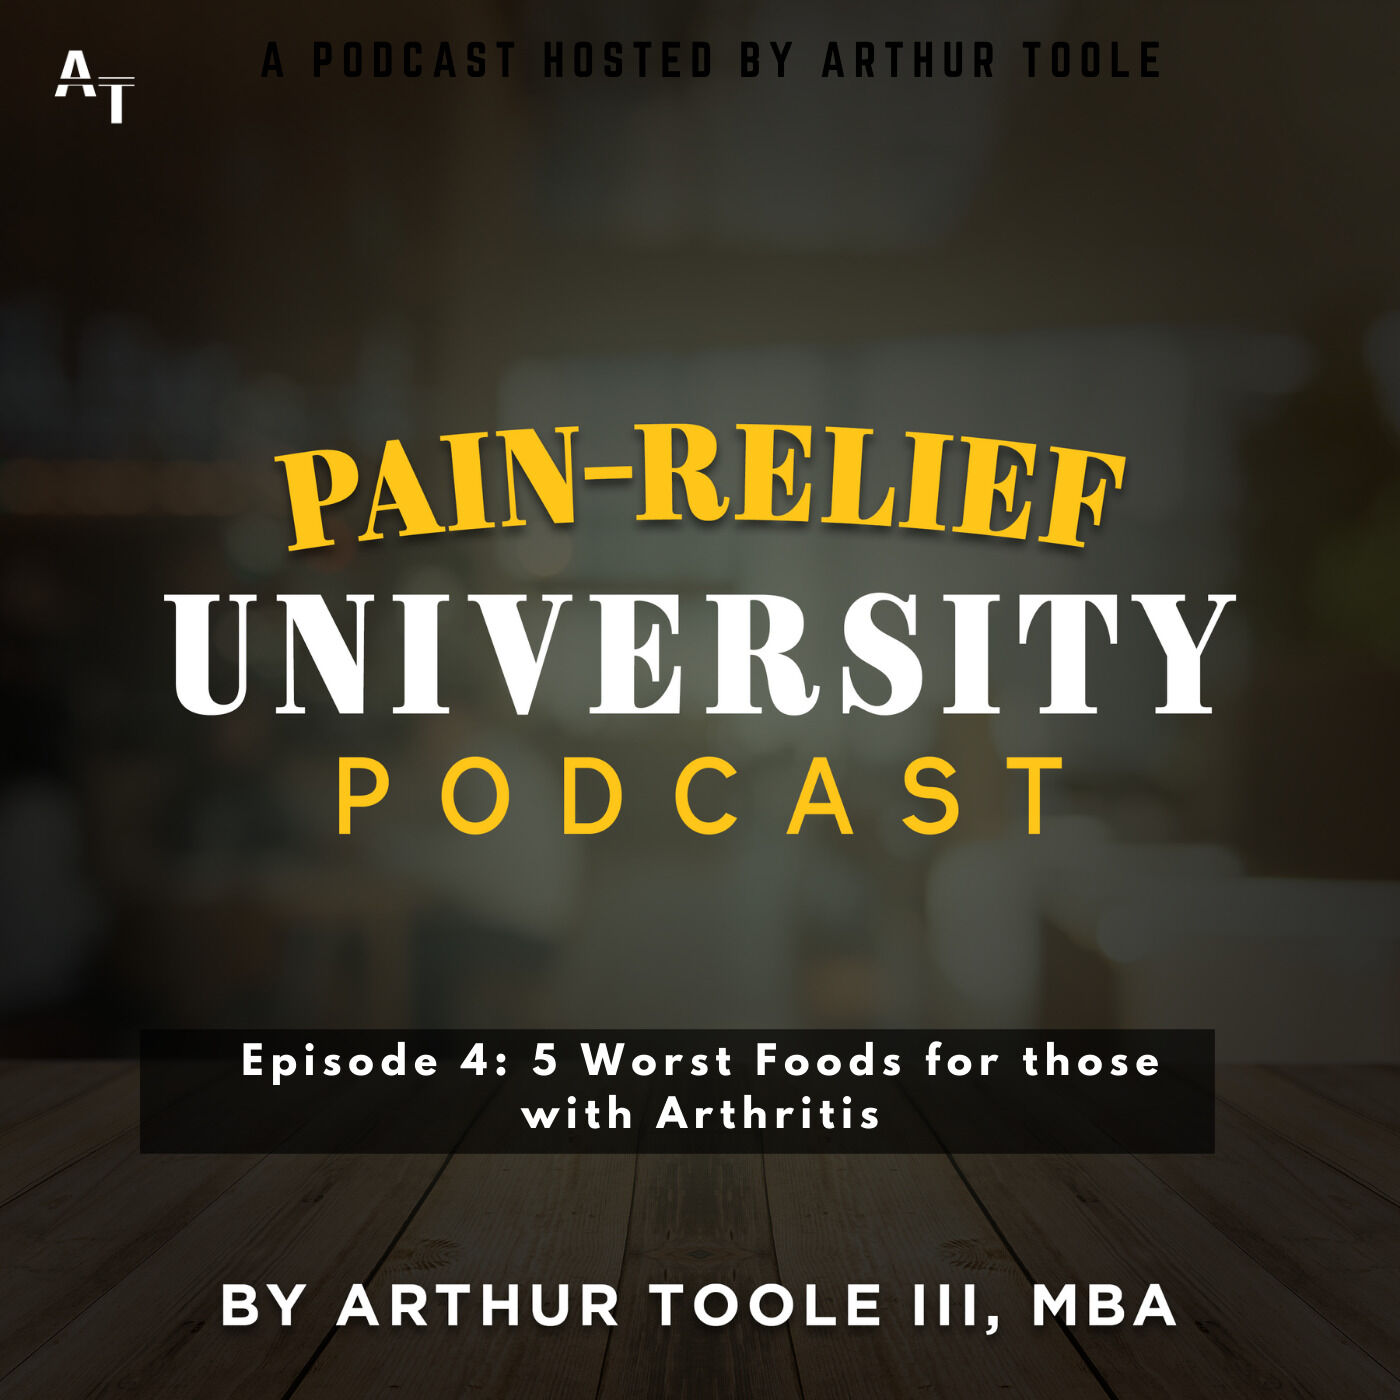 Ep 4 - 5 Worst Foods for those with Arthritis